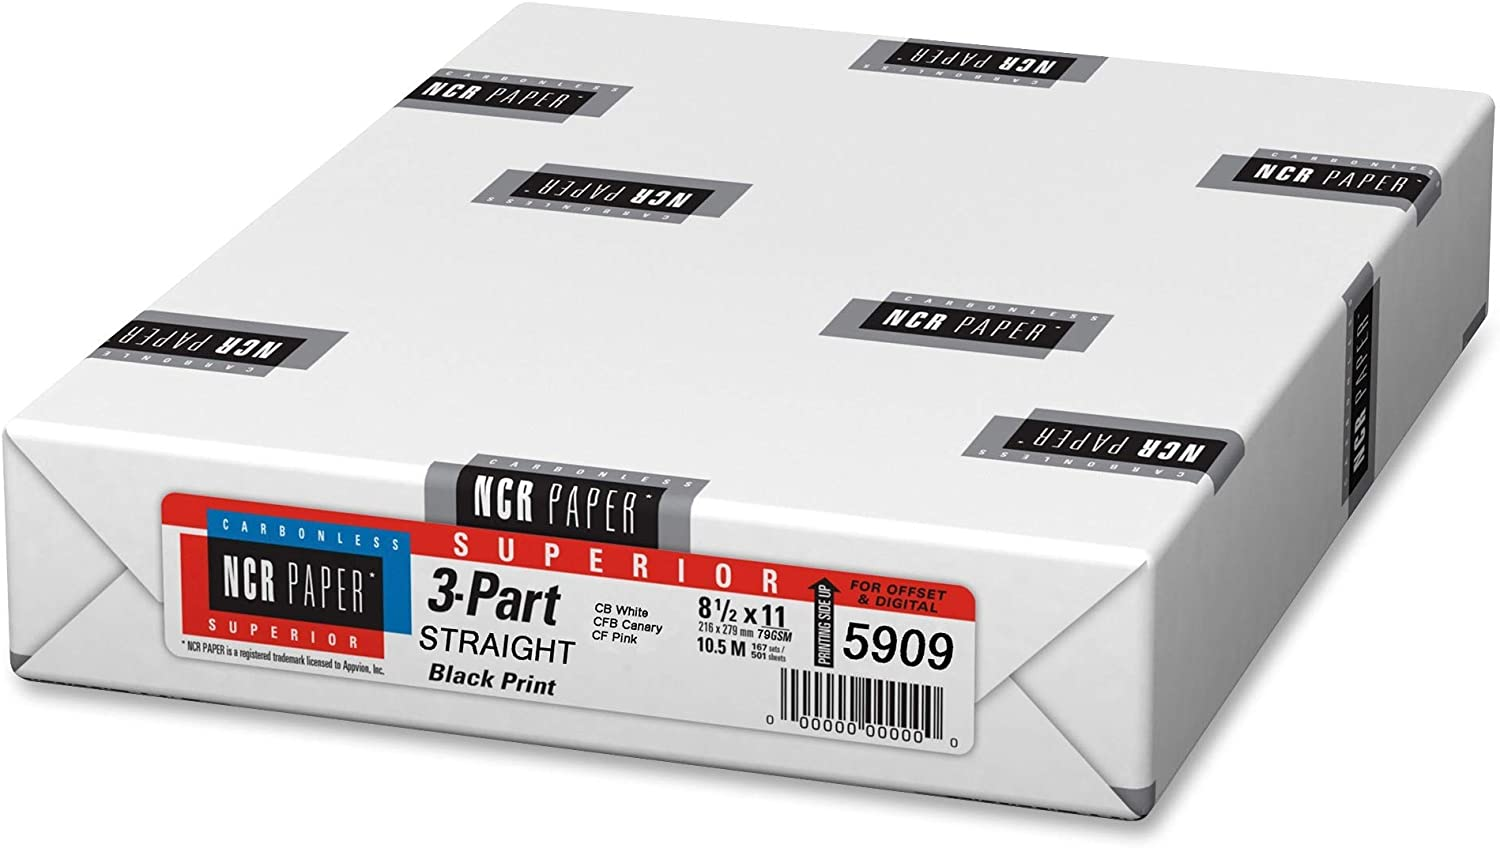 Appvion 5909 Straight Paper, 3-Part, 92GE, 8-1/2-Inch x11-Inch, 500SH/PK : Carbonless Copy Paper : Office Products